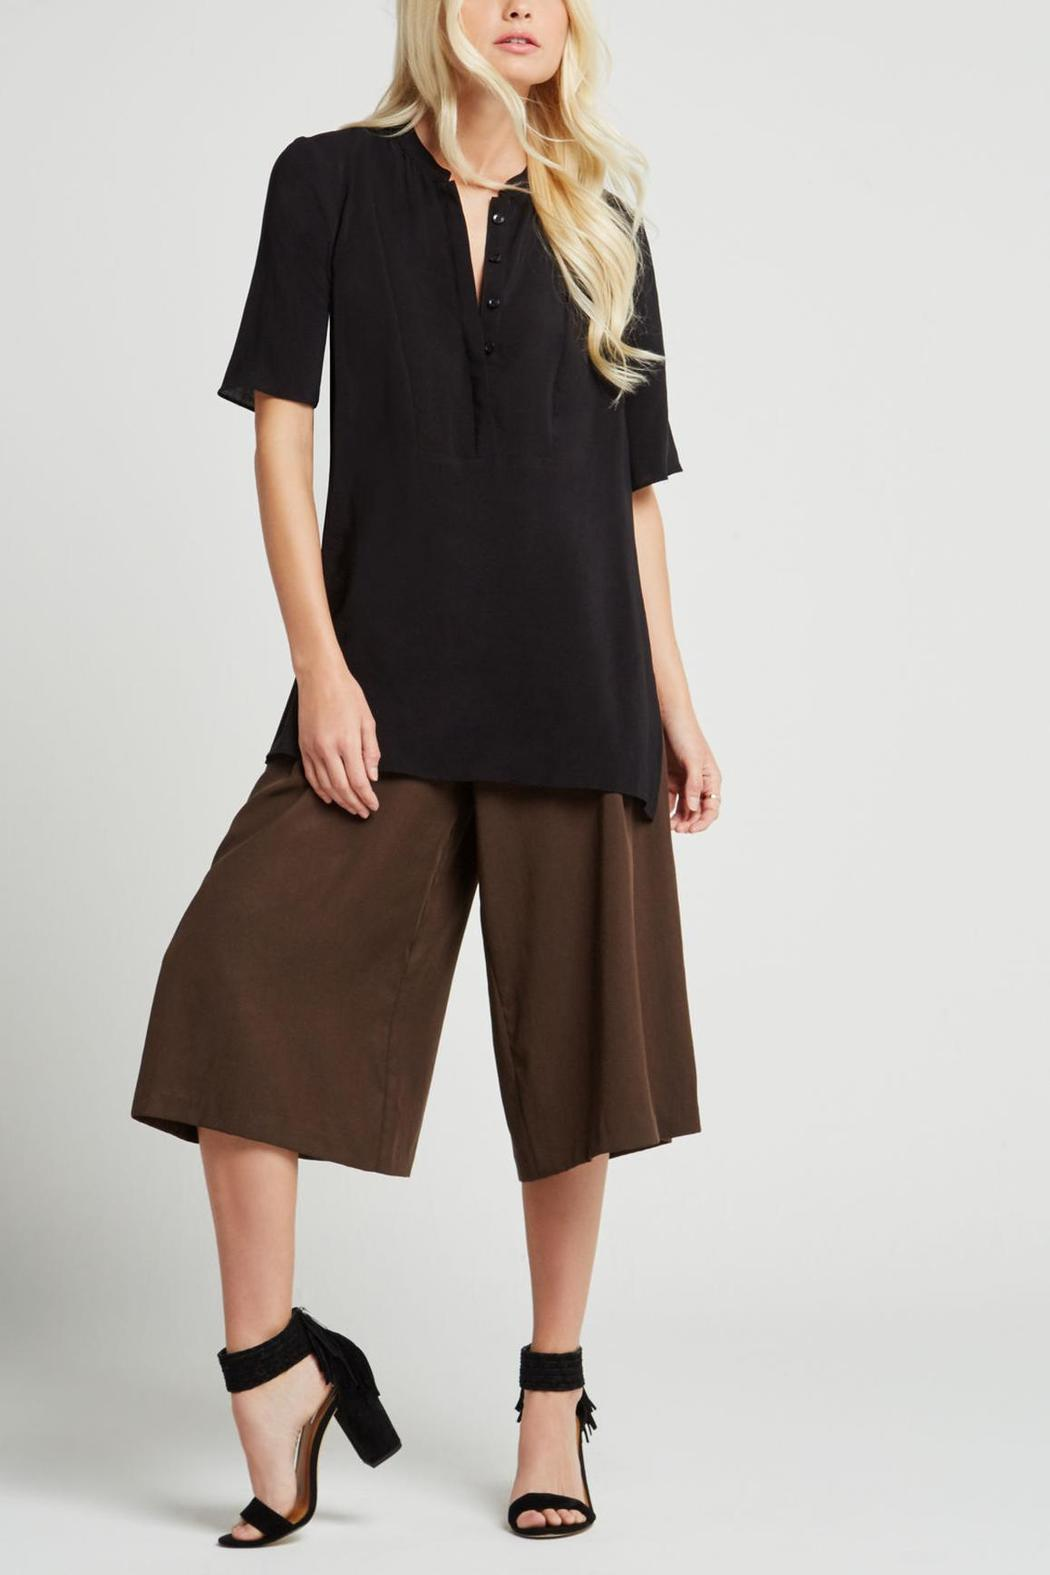 BCBGeneration Hue Short Sleeve Top - Main Image